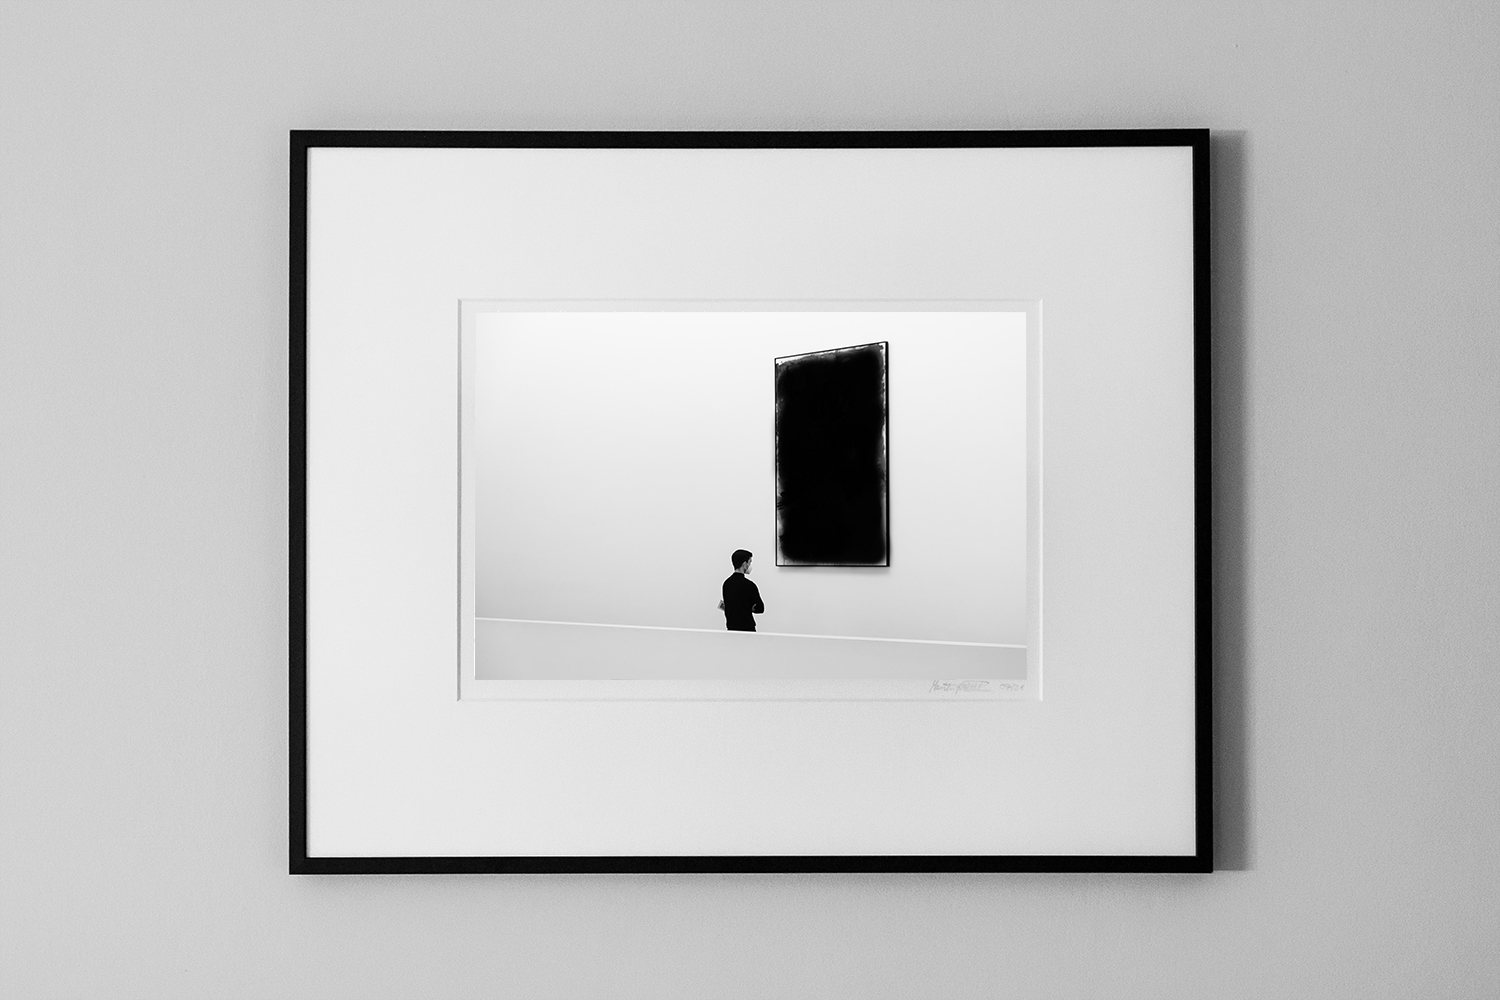 minimalist photograph of a man in black thinking about the art in front of him